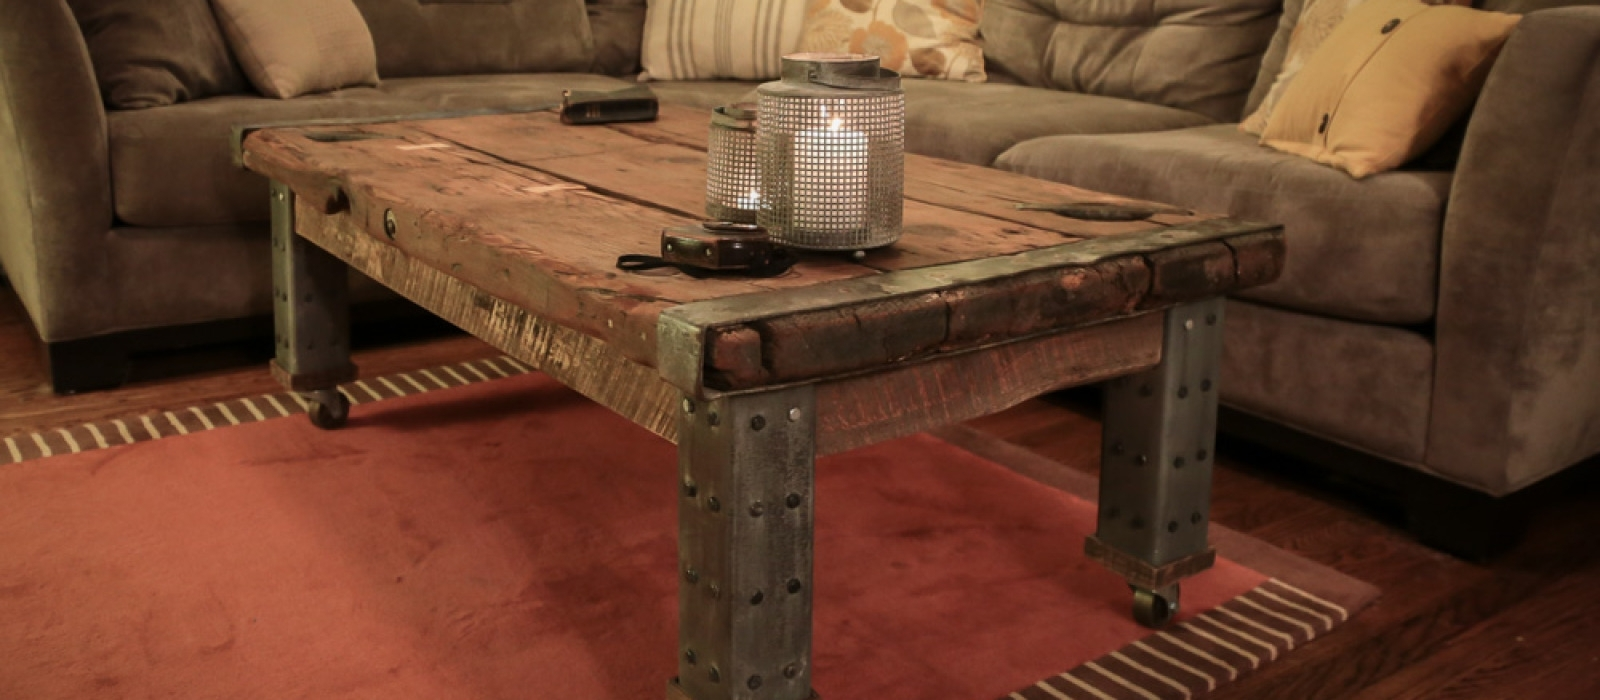 Wwii Ship Hatch Turned Coffee Table | Hammer & Moxie pertaining to Chiseled Edge Coffee Tables (Image 30 of 30)